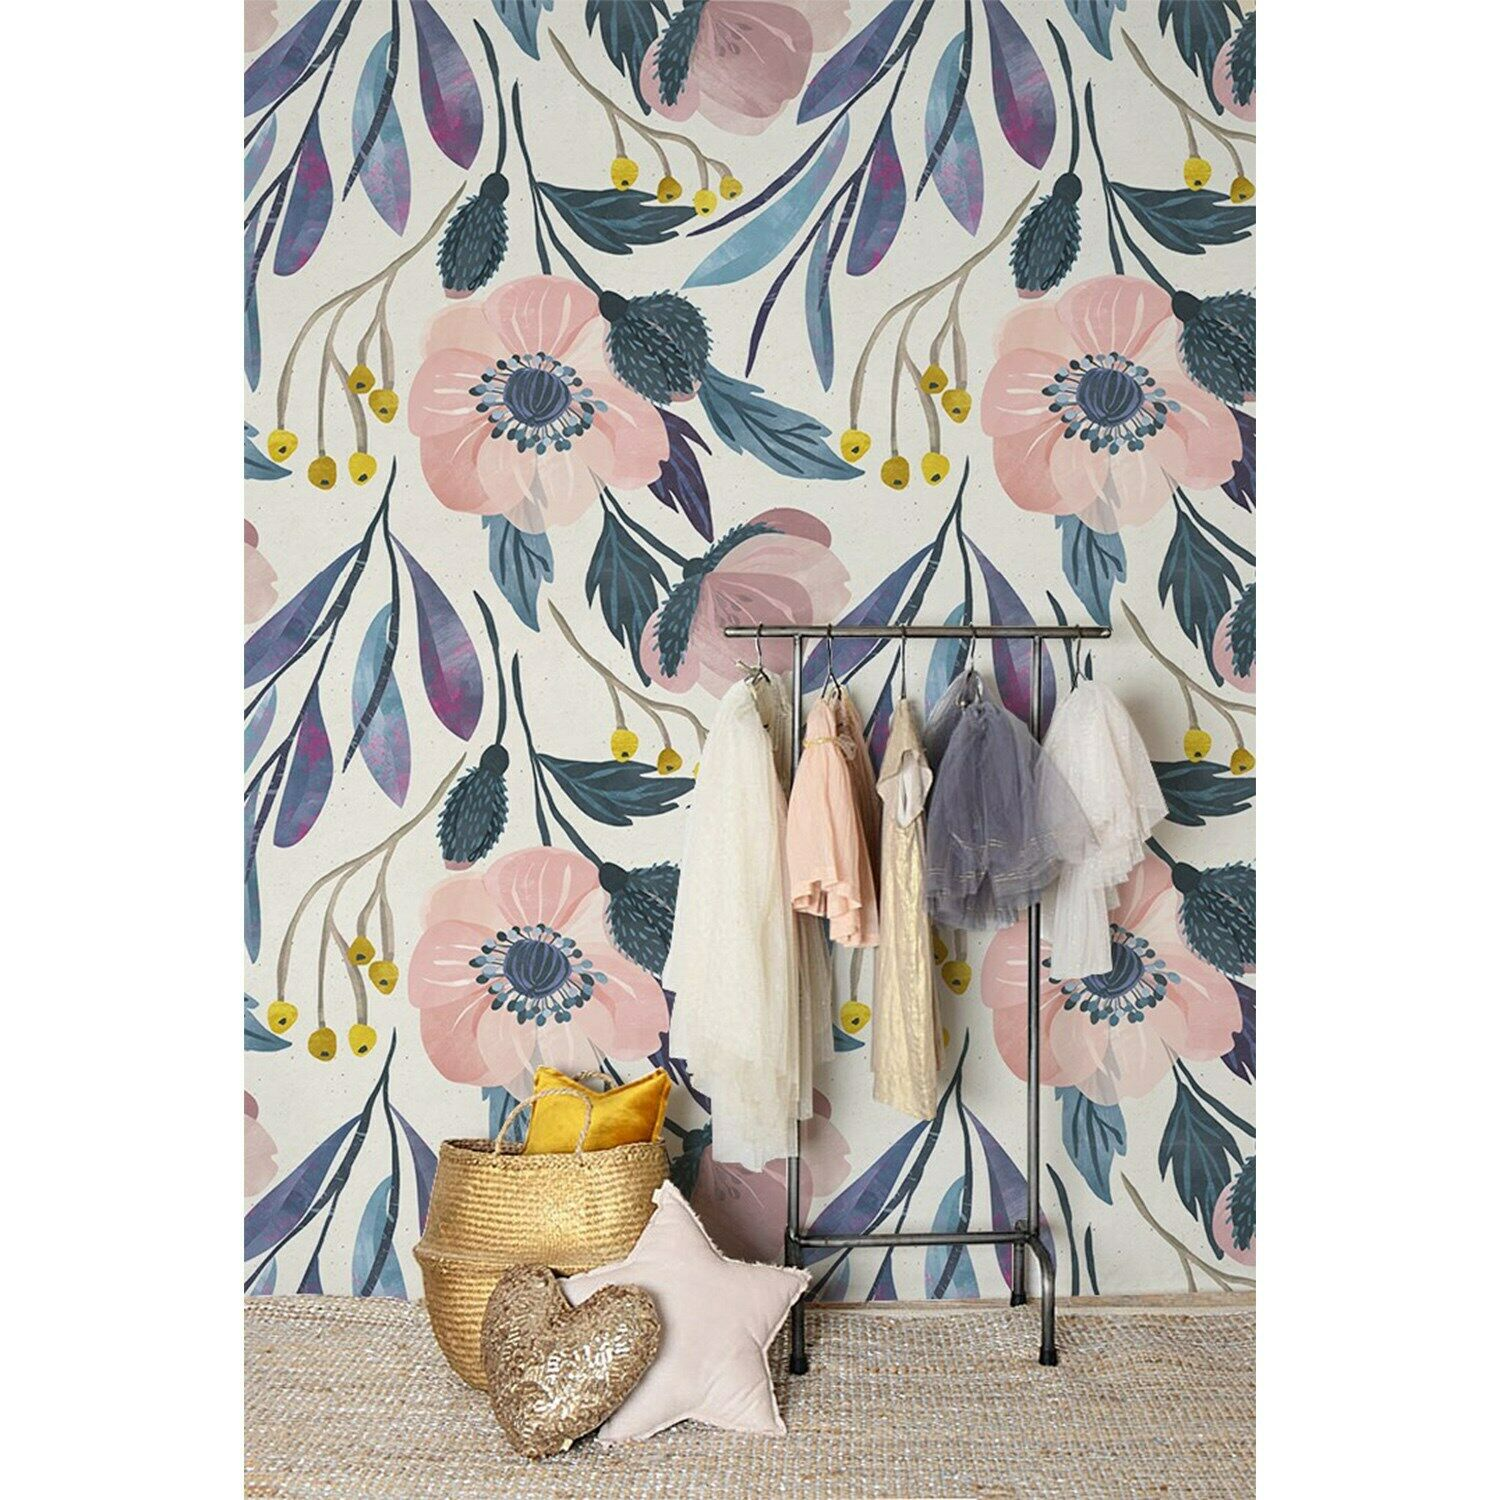 Non-Woven wallpaper Dangle Flowers Pastels Floral Patern Traditional Home Mural